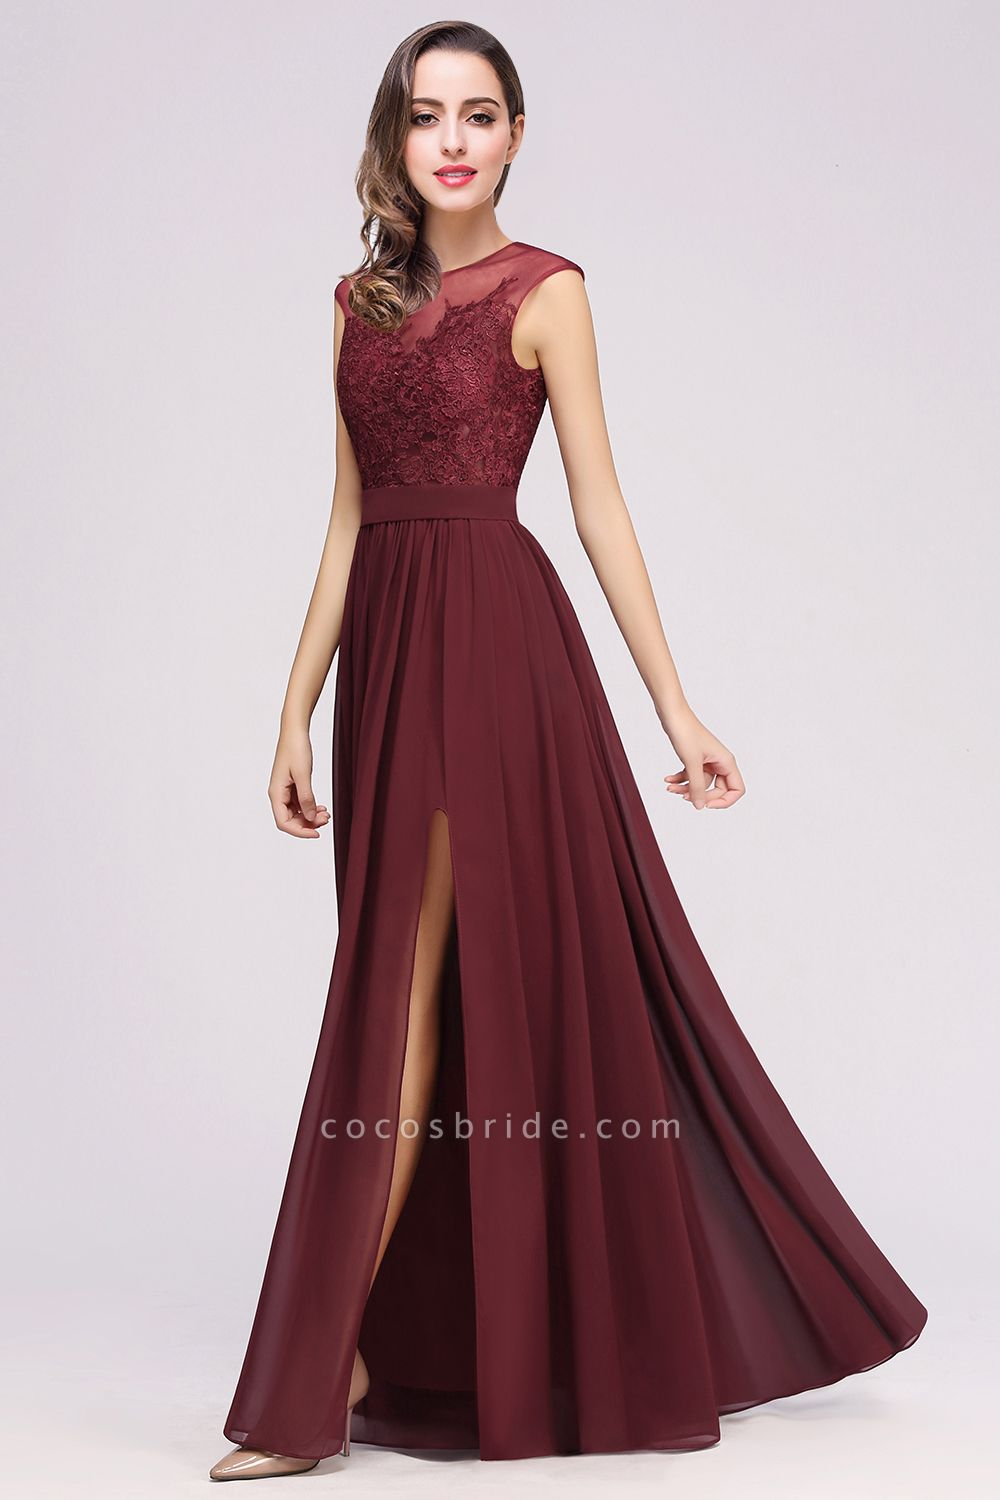 https://www.cocosbride.com/lace-chiffon-floor-length-a-line-bridesmaid-dress-g950?cate_2=69